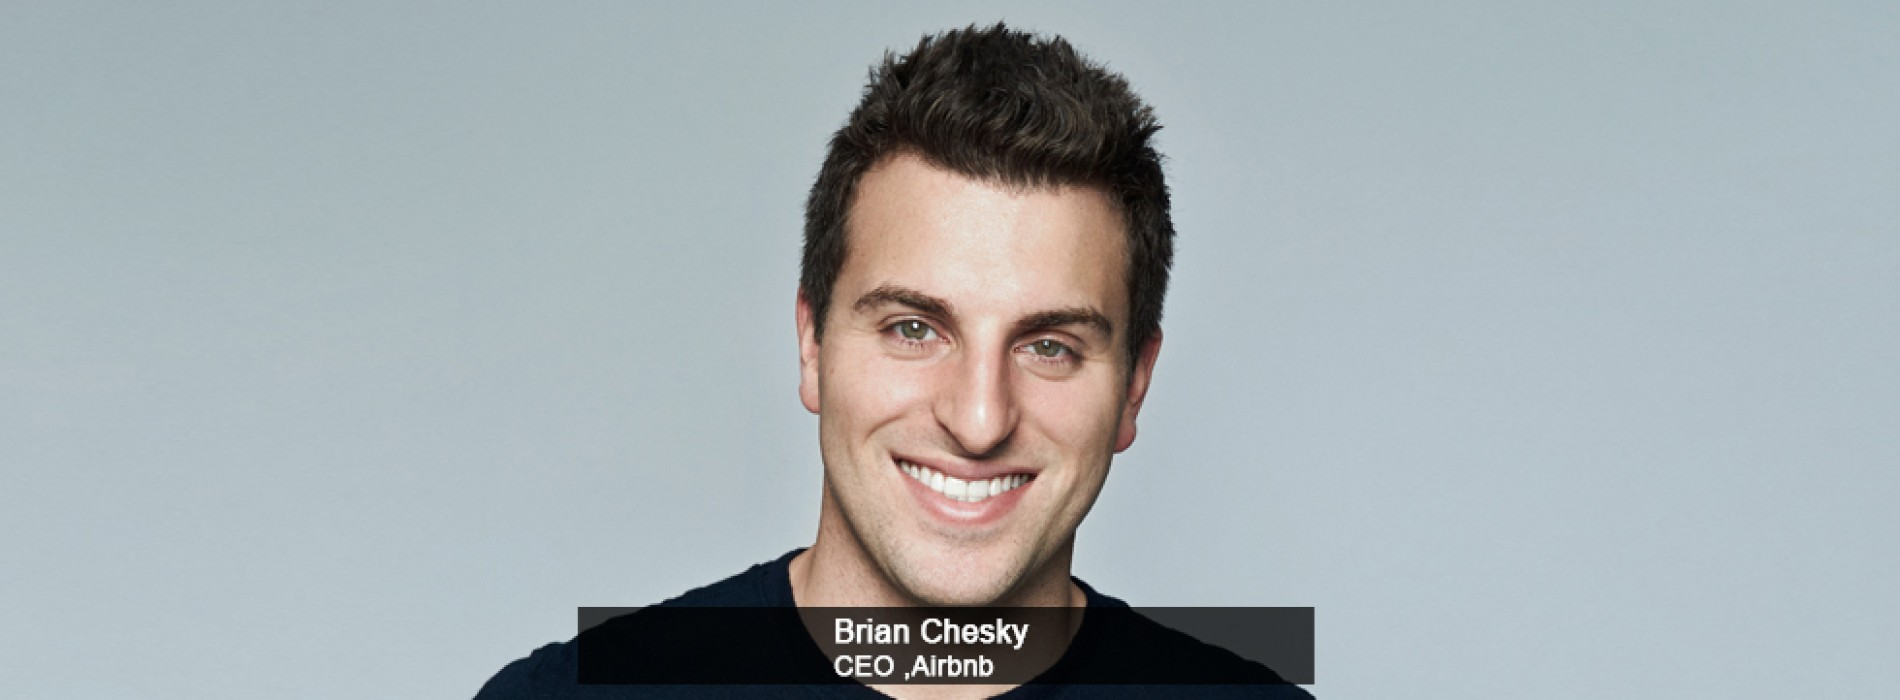 Airbnb CEO Brian Chesky gives a 5-star rating to India market